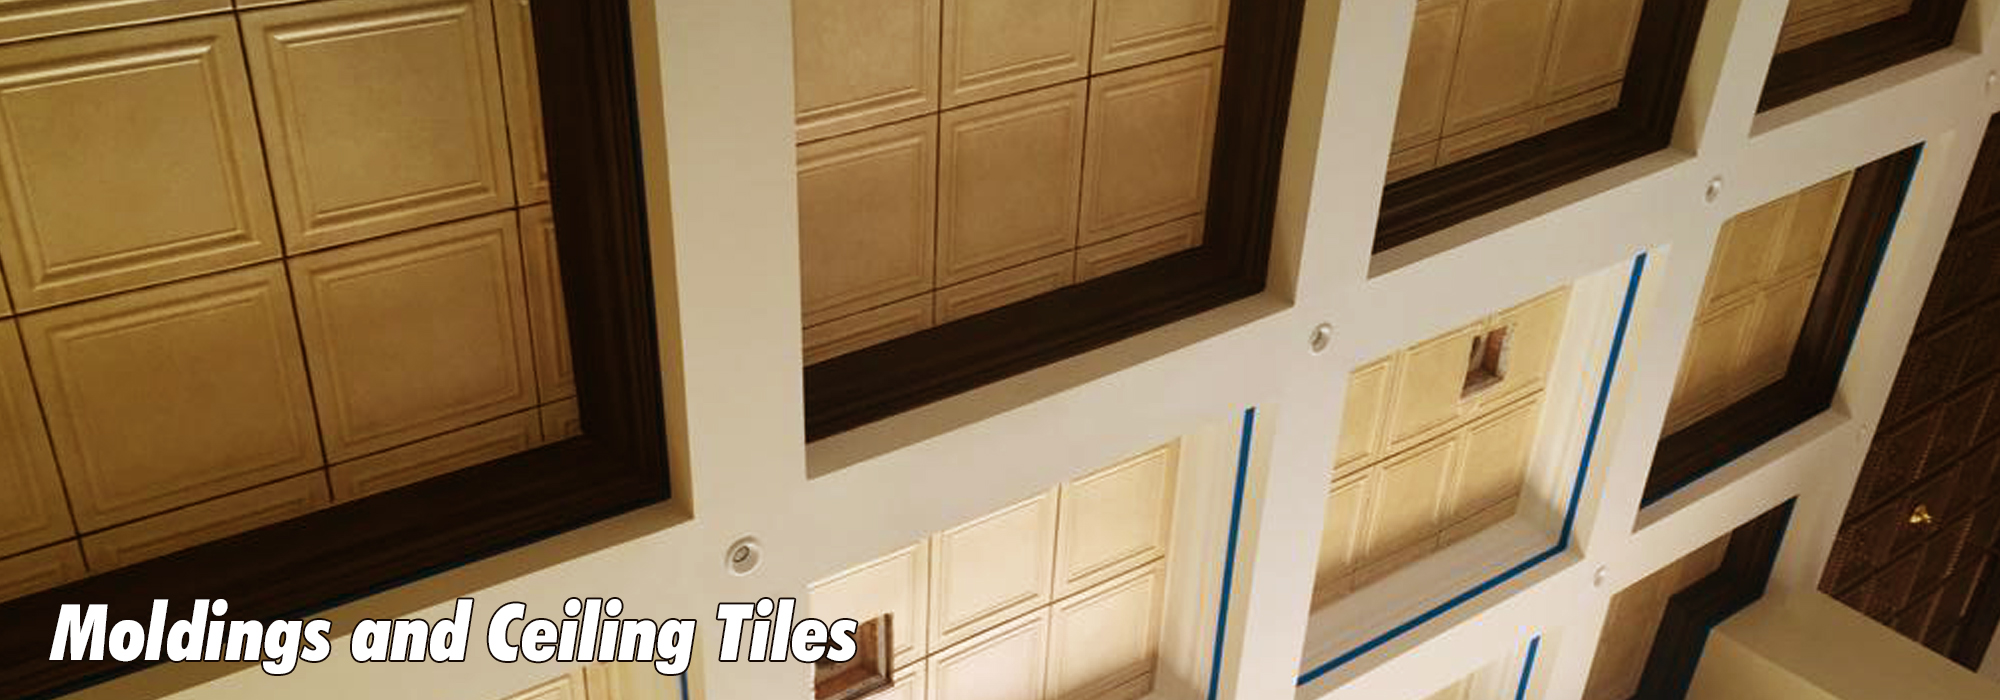 Moldings and Ceiling Tiles